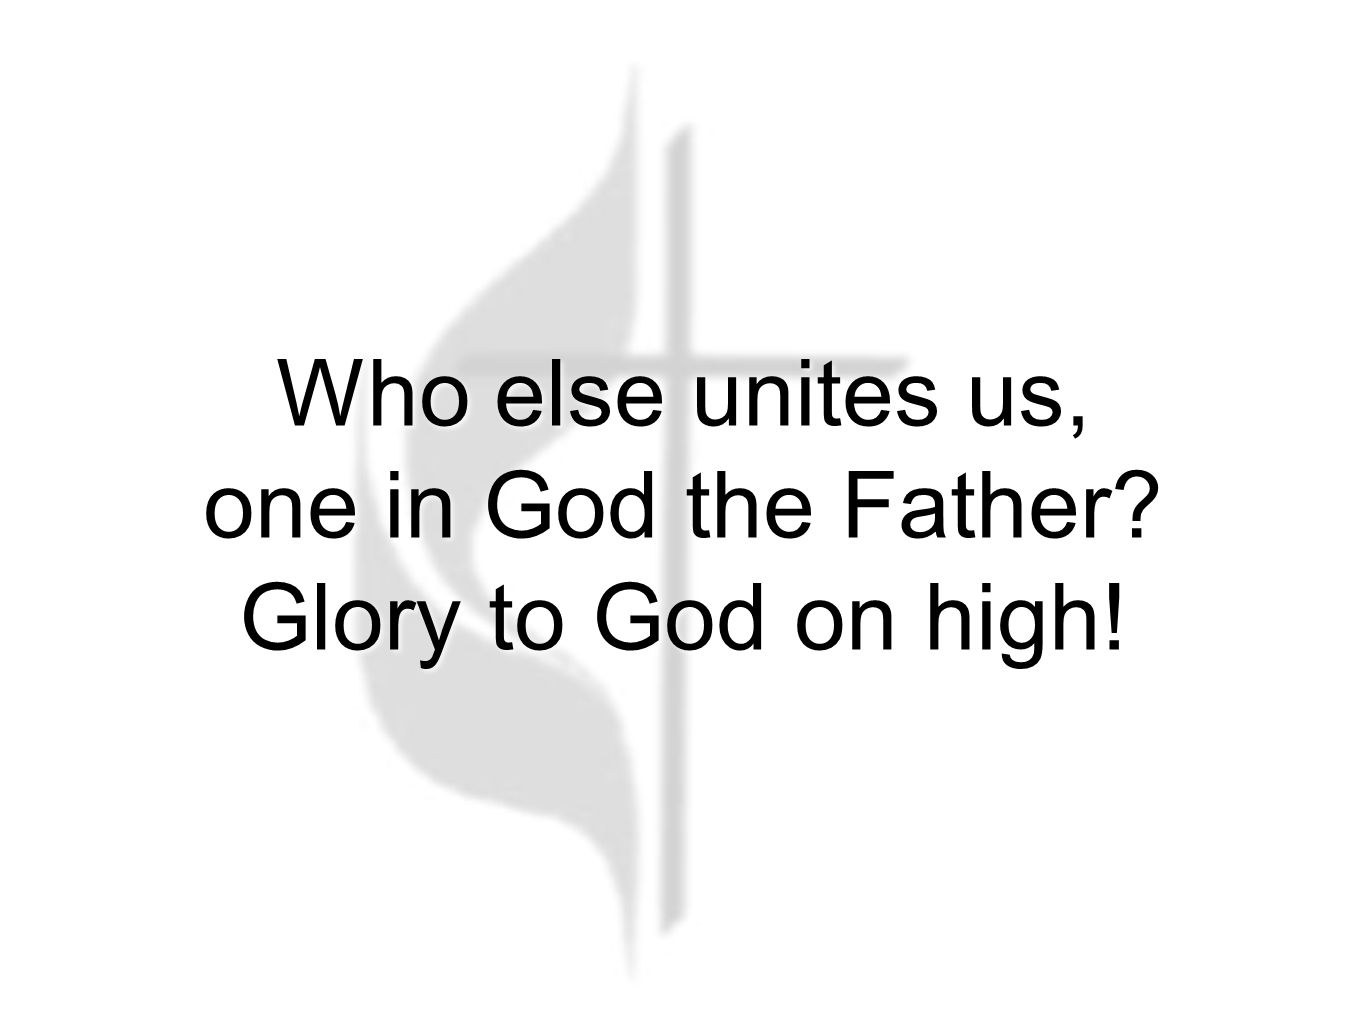 Who else unites us, one in God the Father? Glory to God on high!